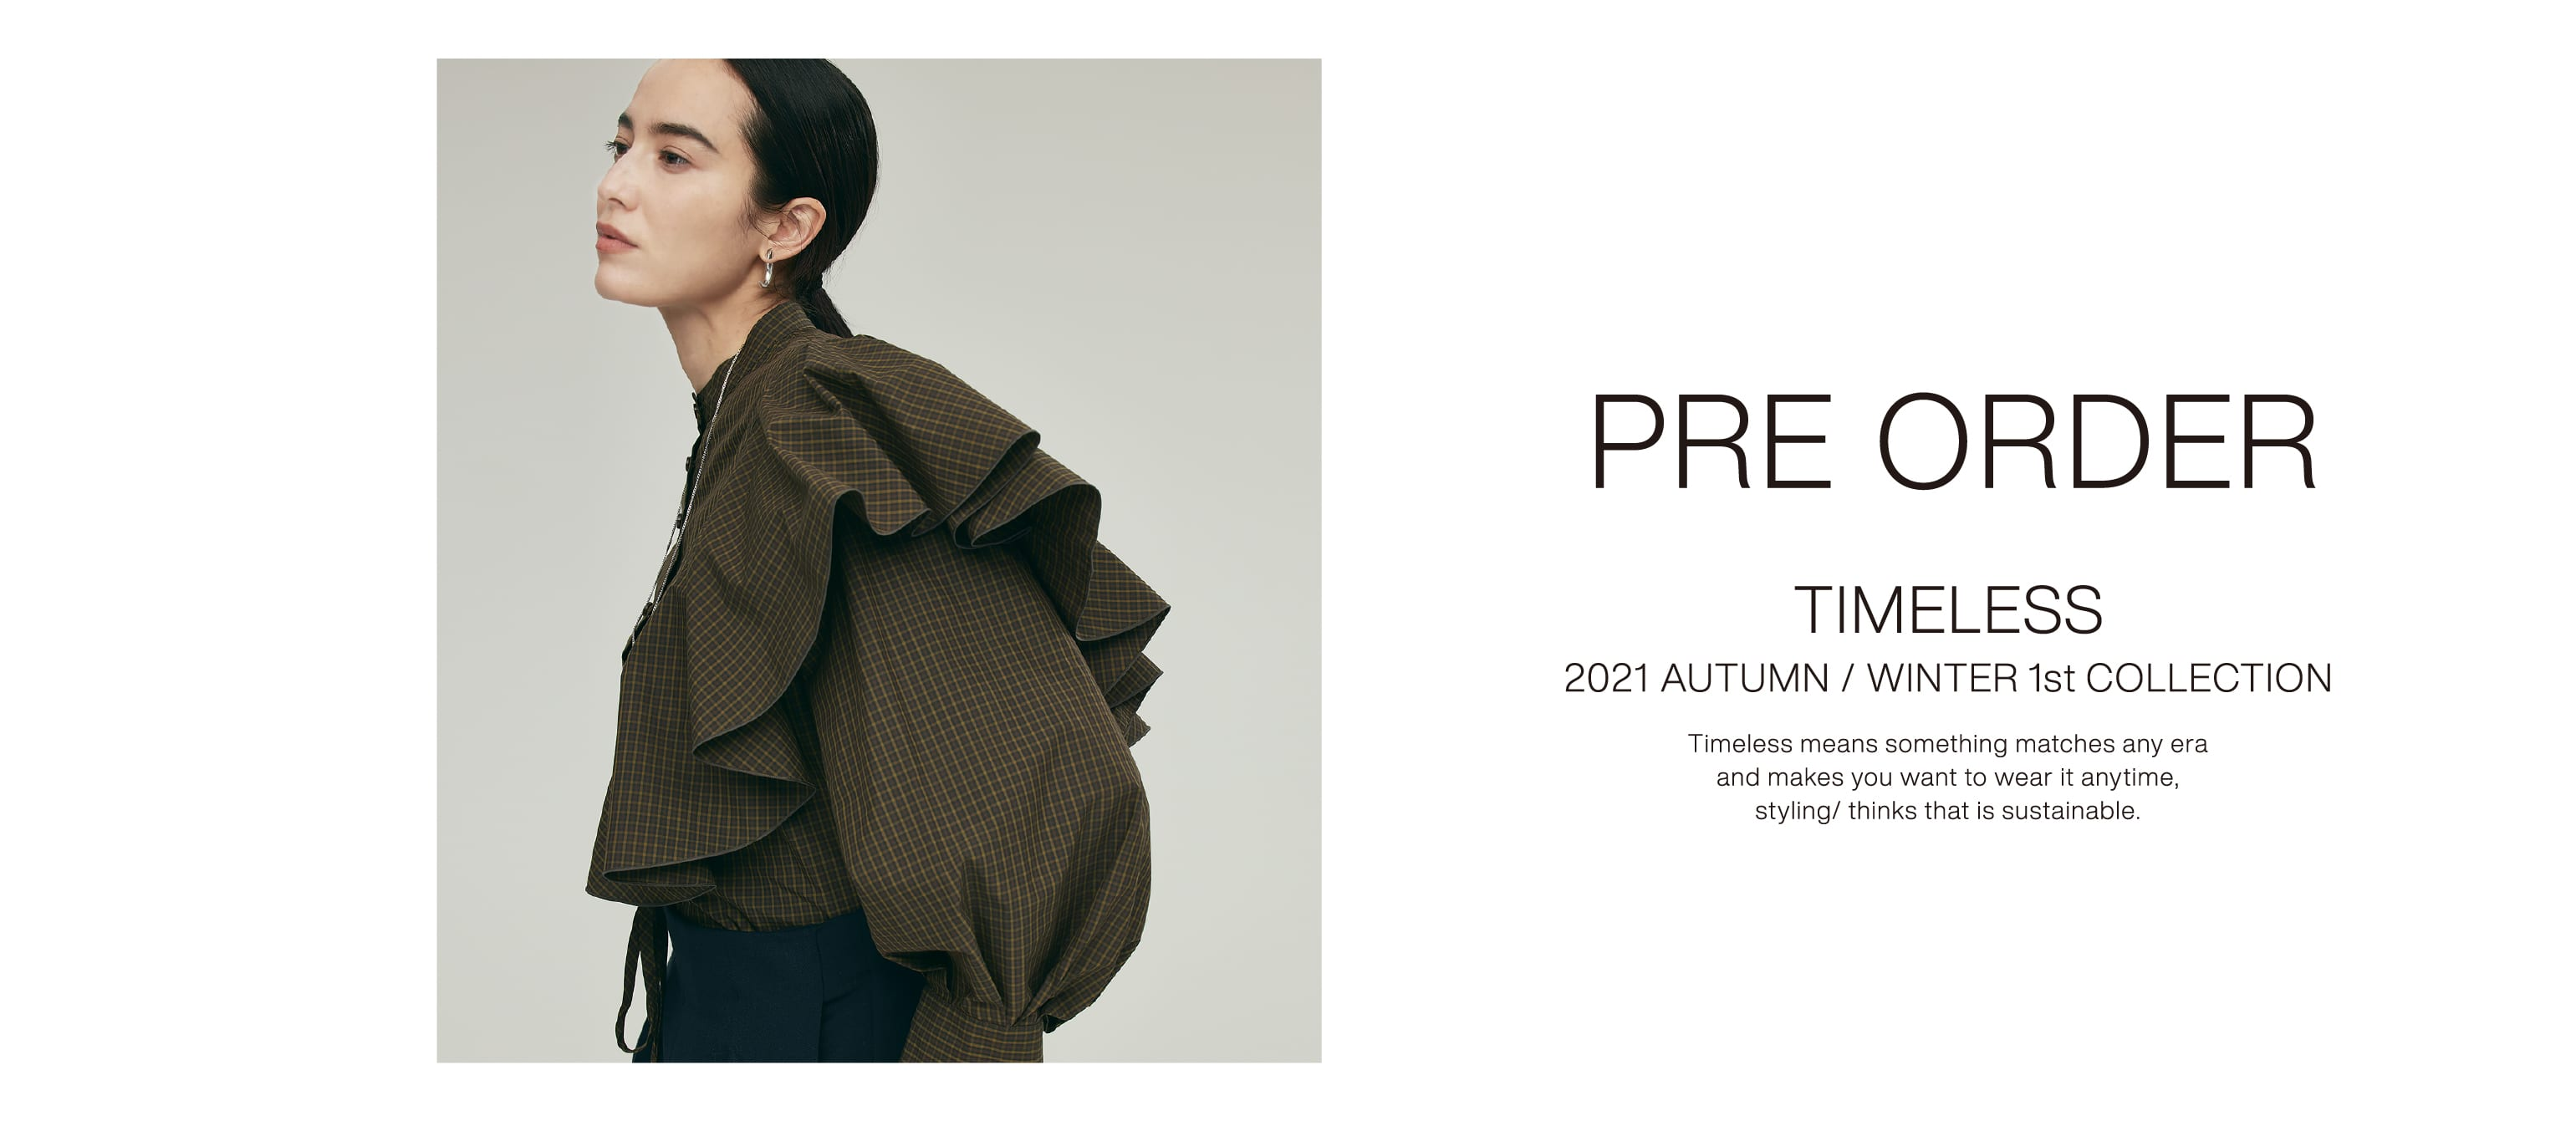 AW1st Preorder